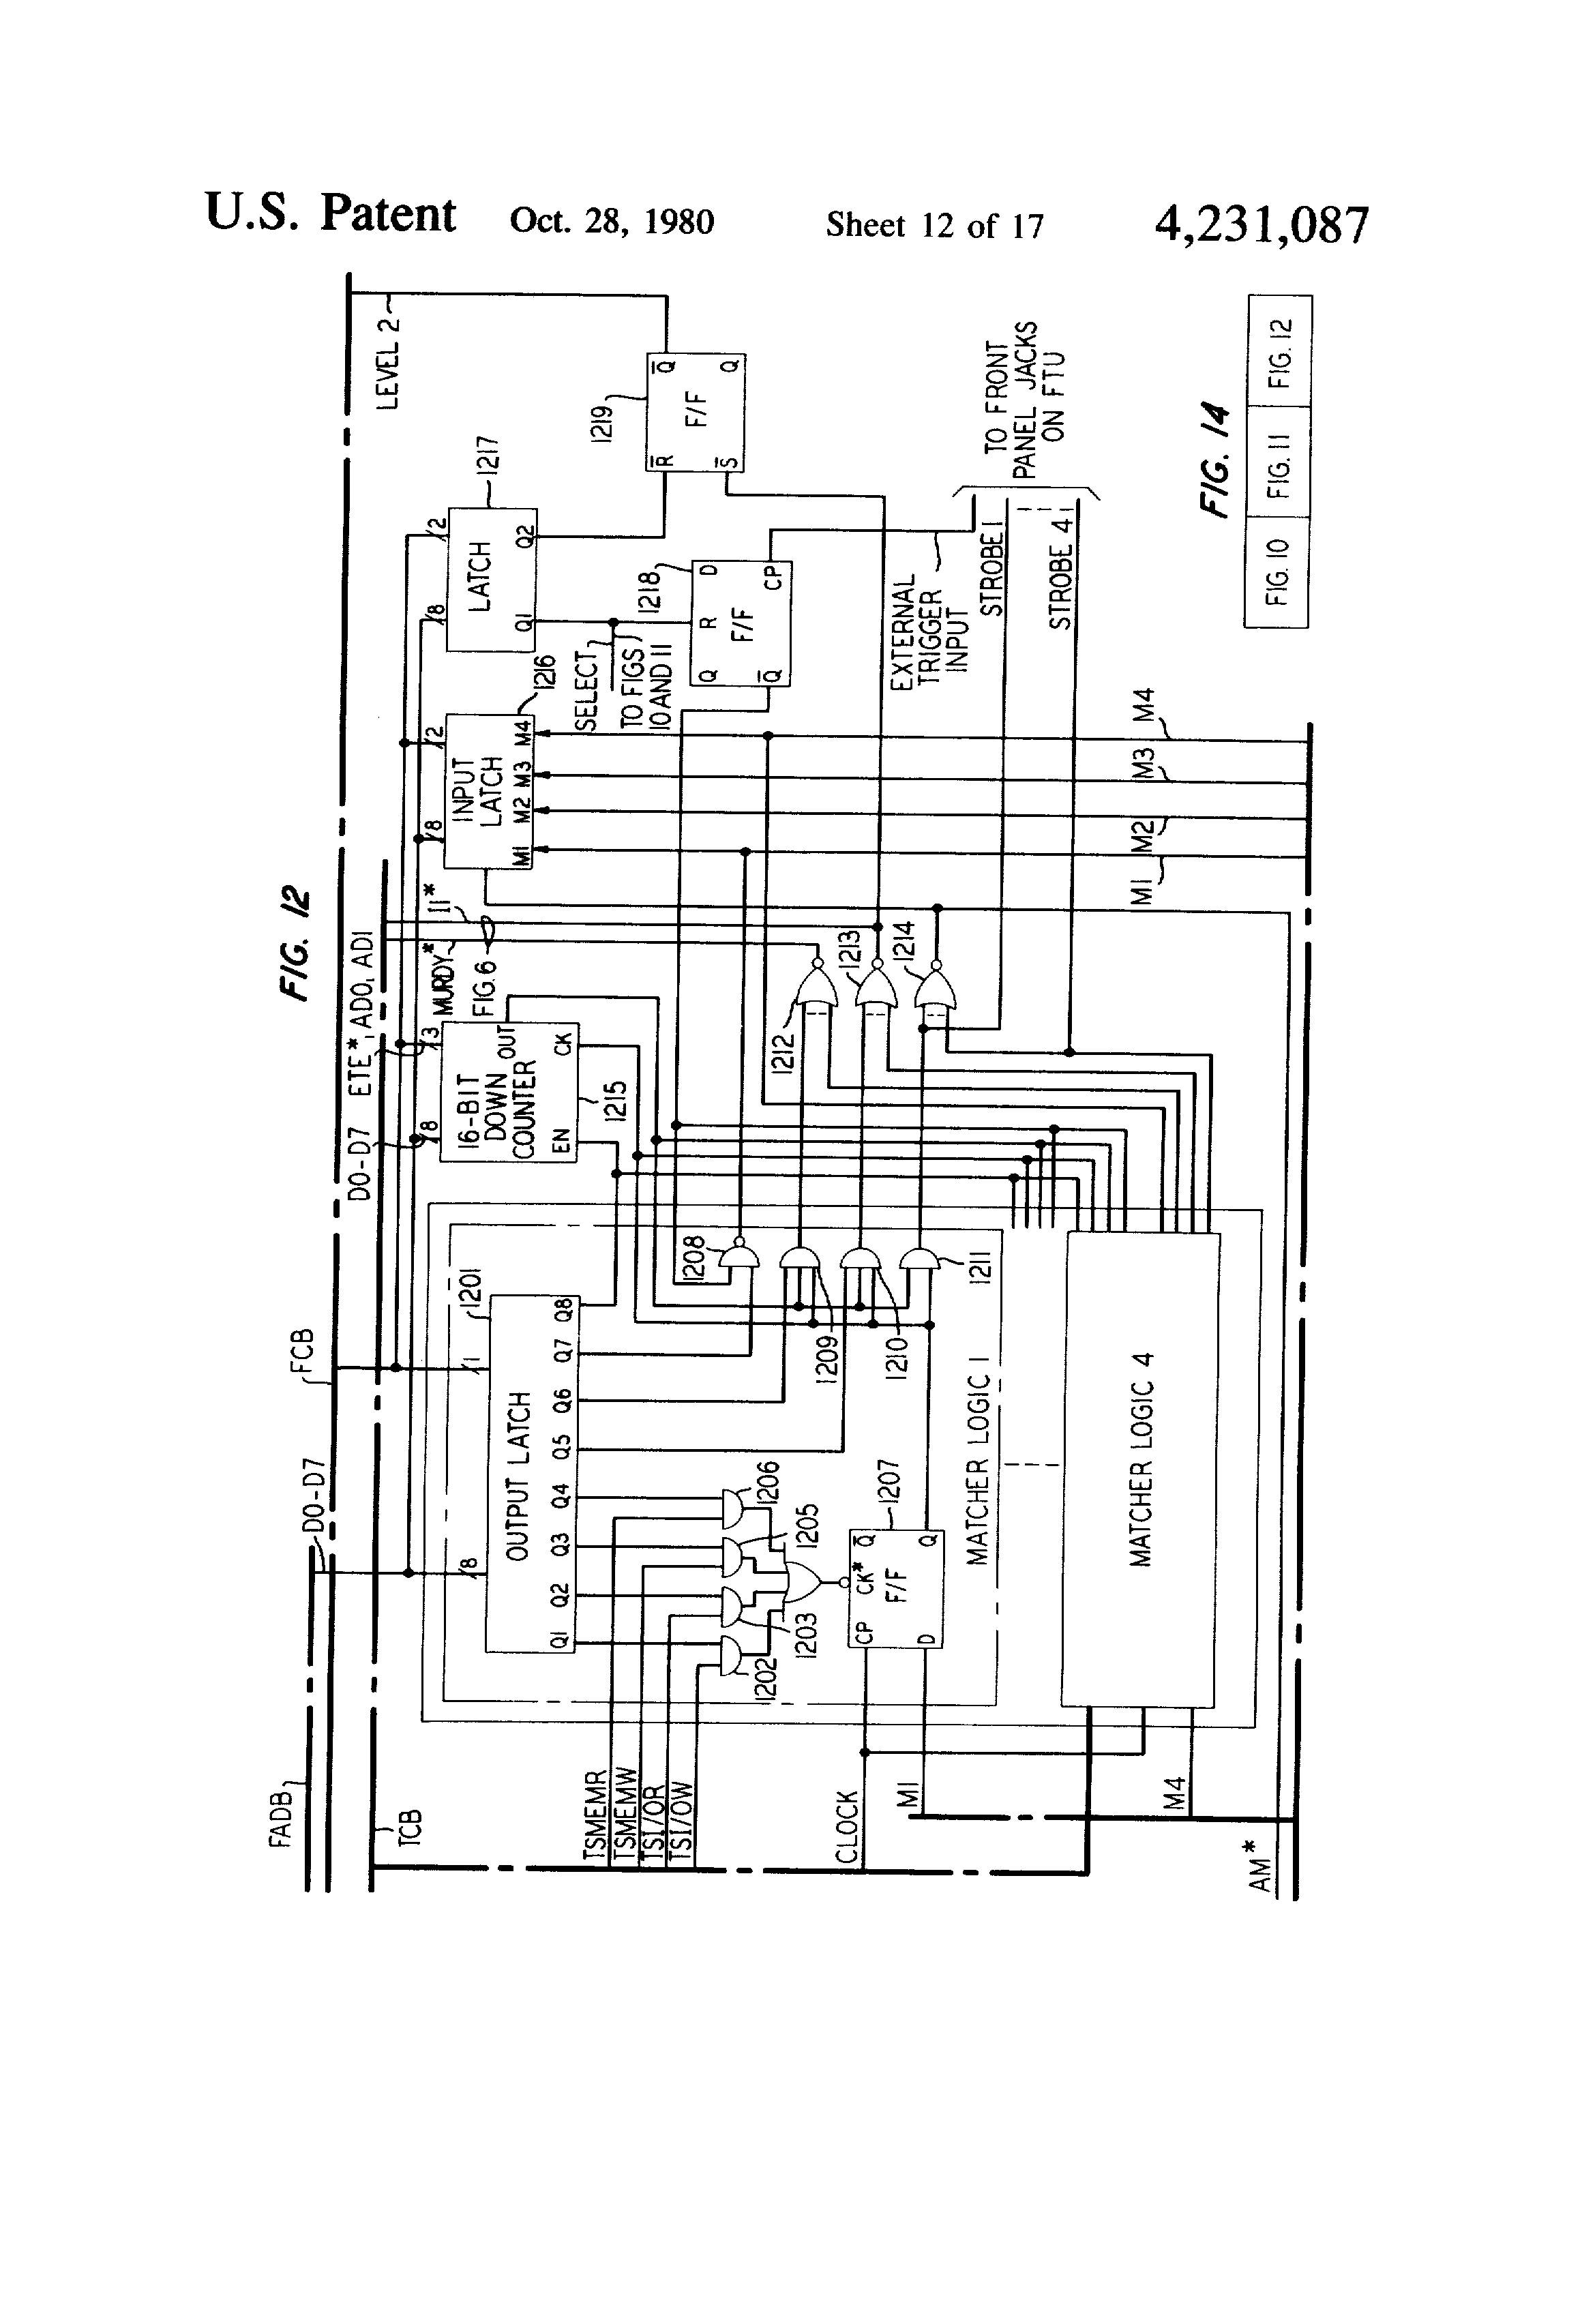 inncom wiring diagram amx wiring diagram wiring diagram